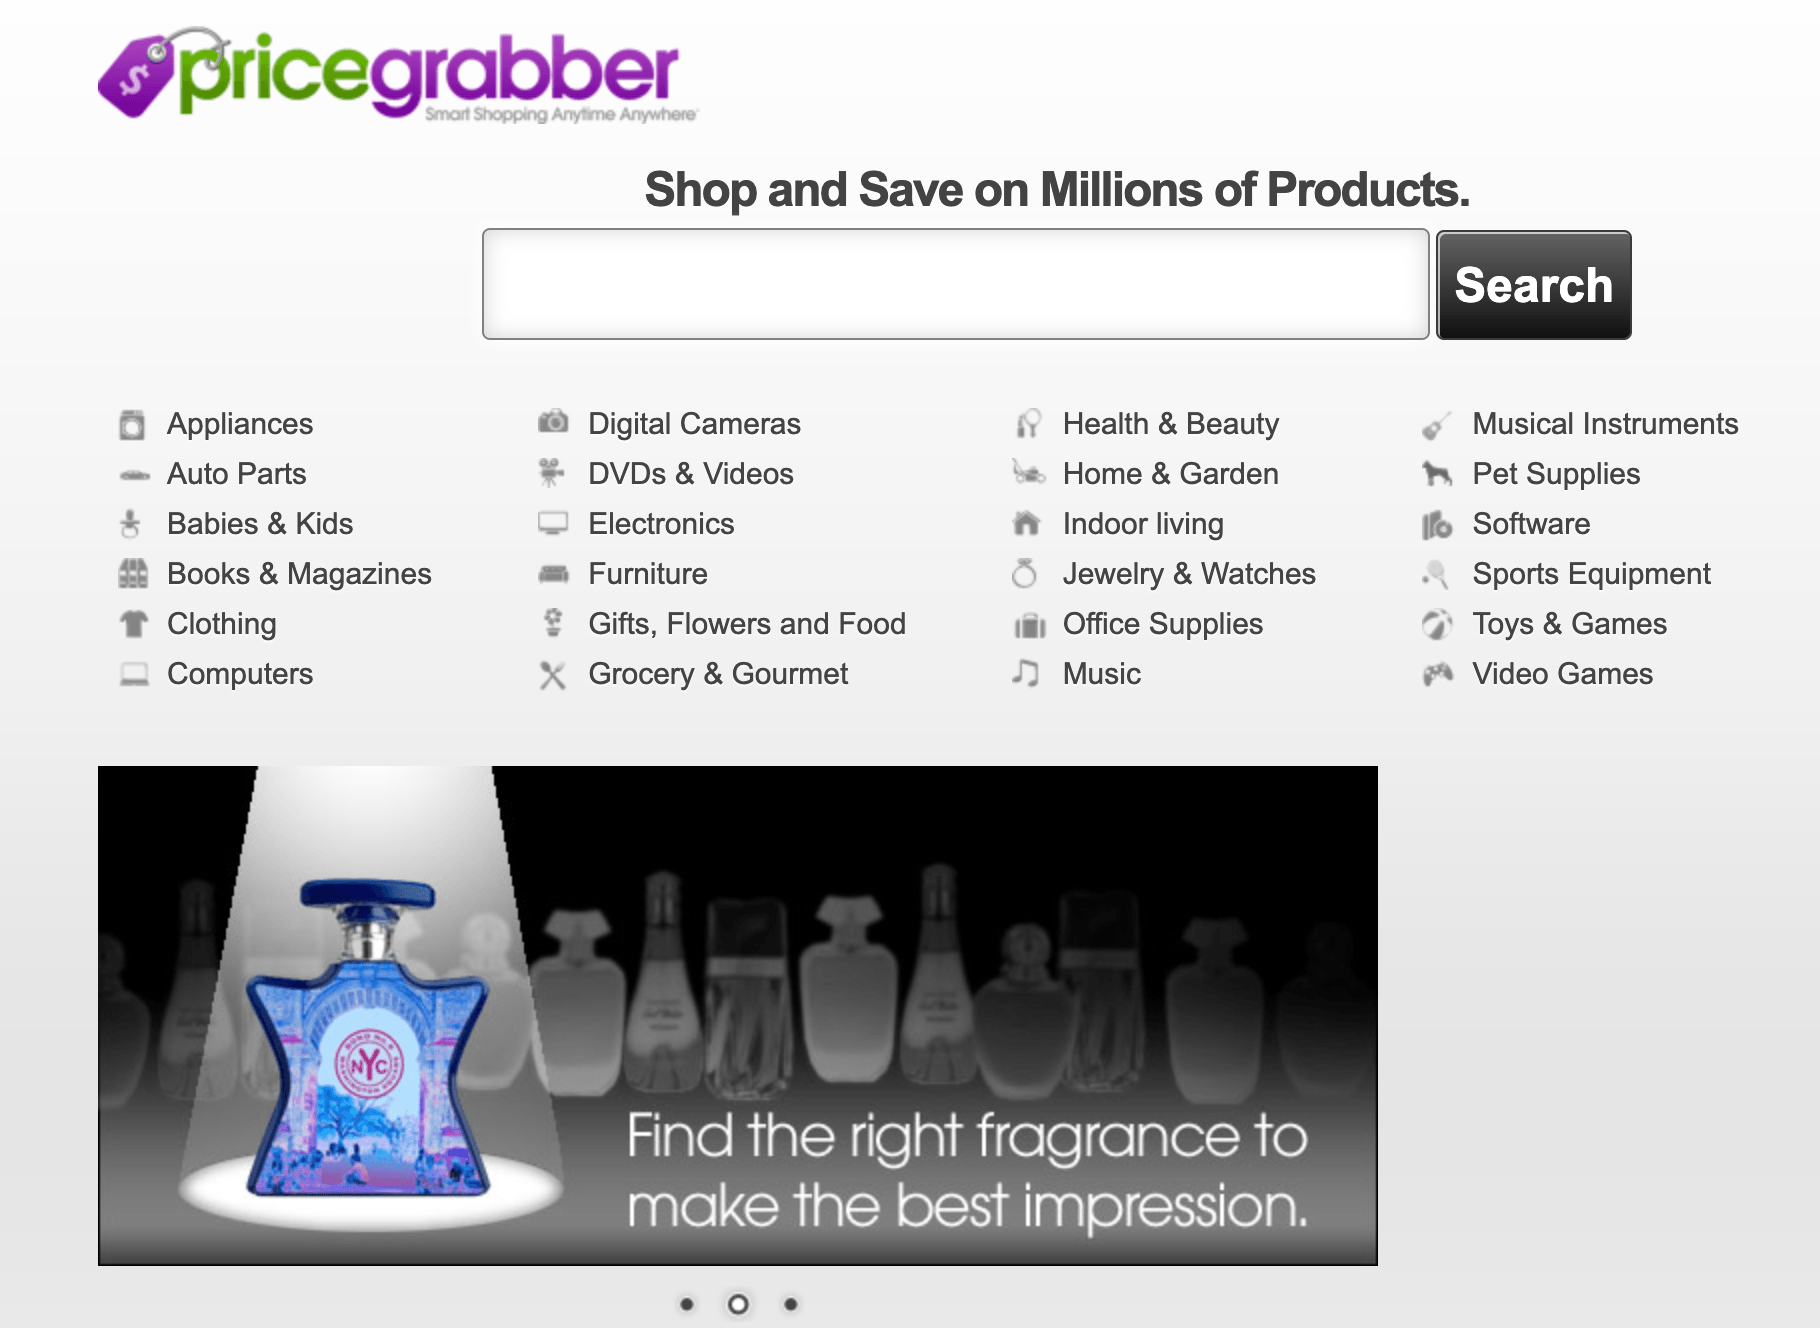 Pricegrabber comparison website